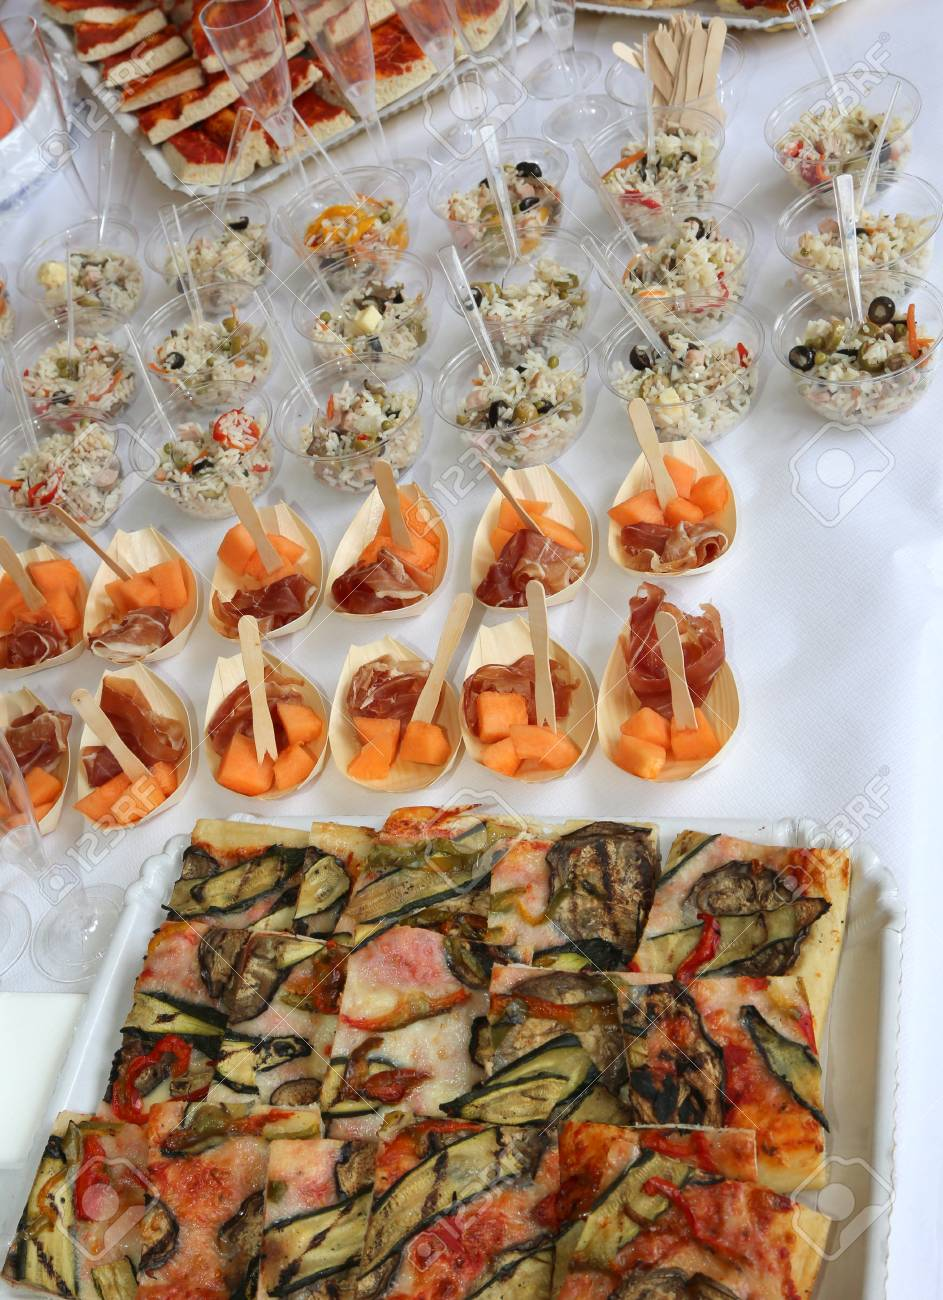 Table With Rice Pizza And Ham With Melon During The Wedding